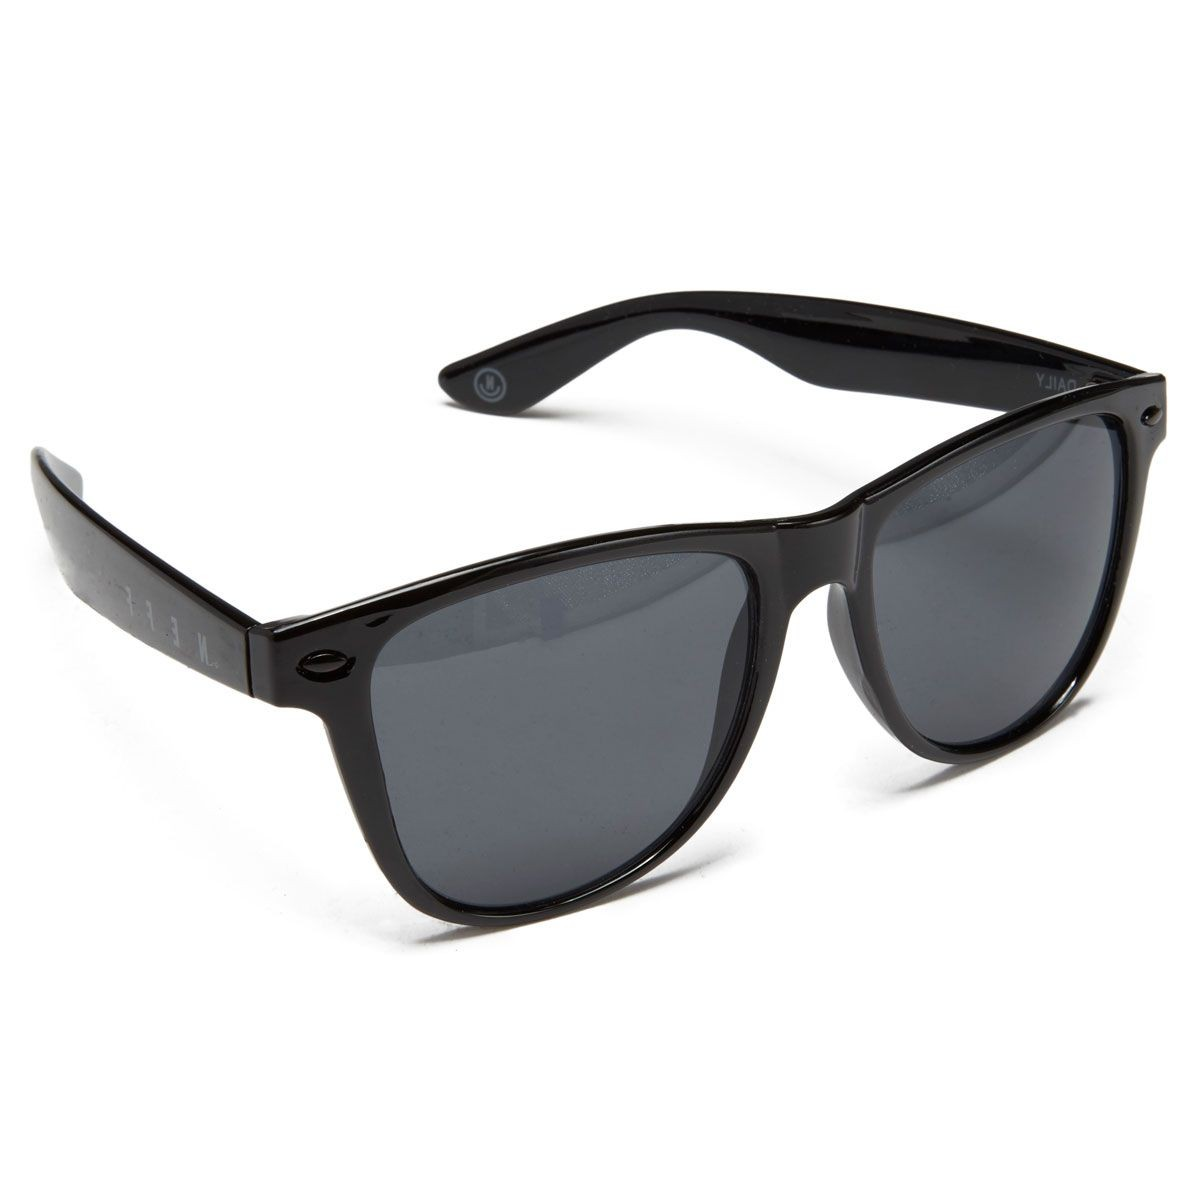 af8ae657ae Neff Daily Shades Sunglasses - Gloss Black